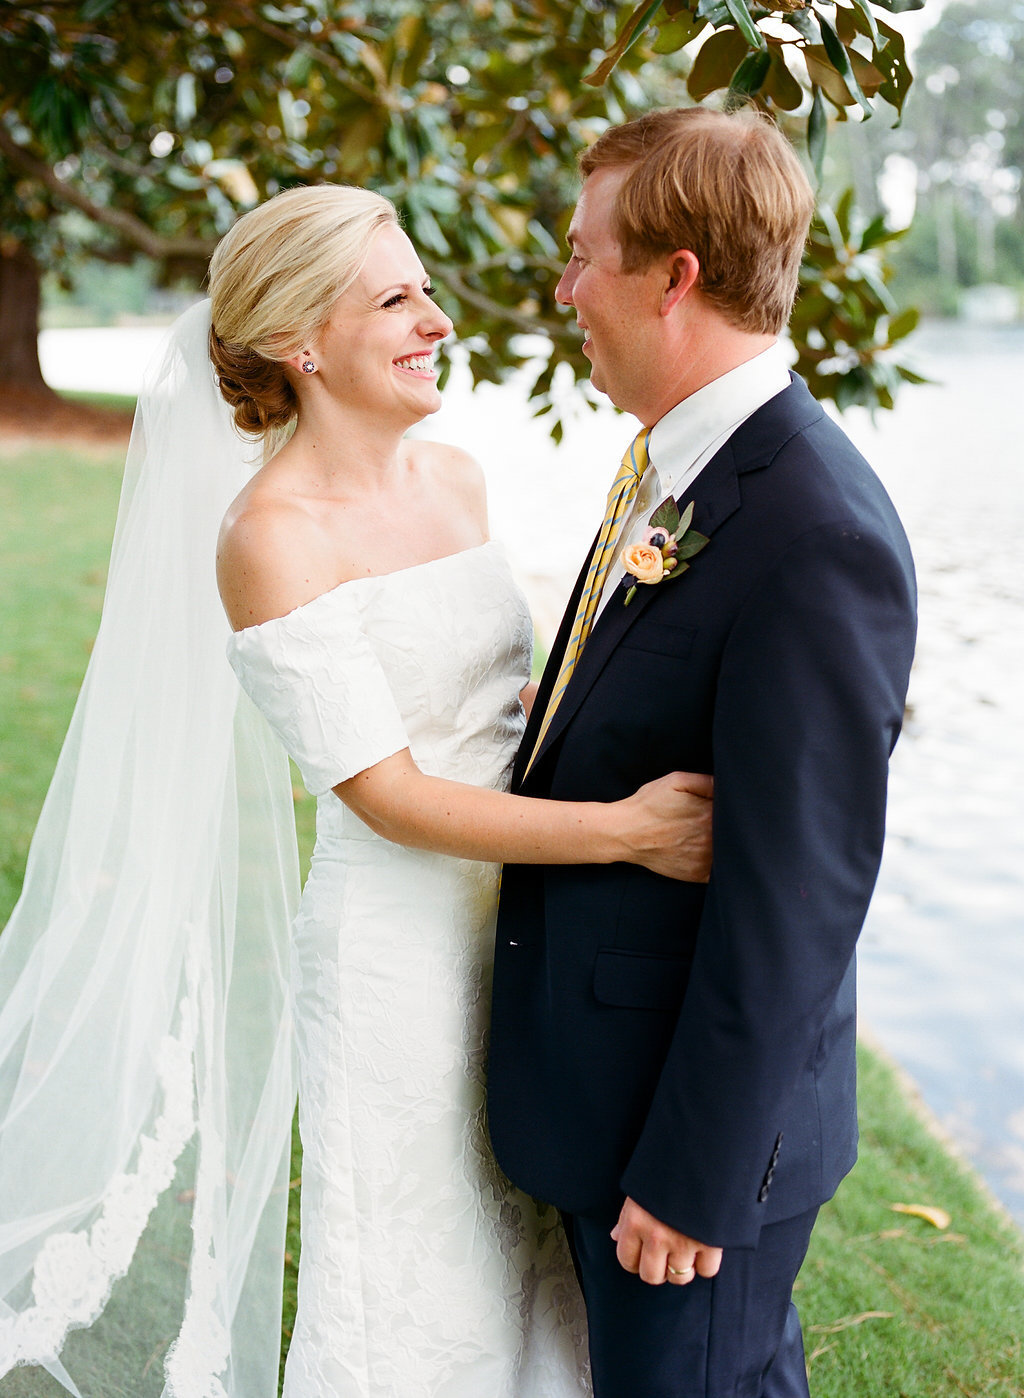 columbia-south-carolina-wedding-event-planner-jessica-rourke-517